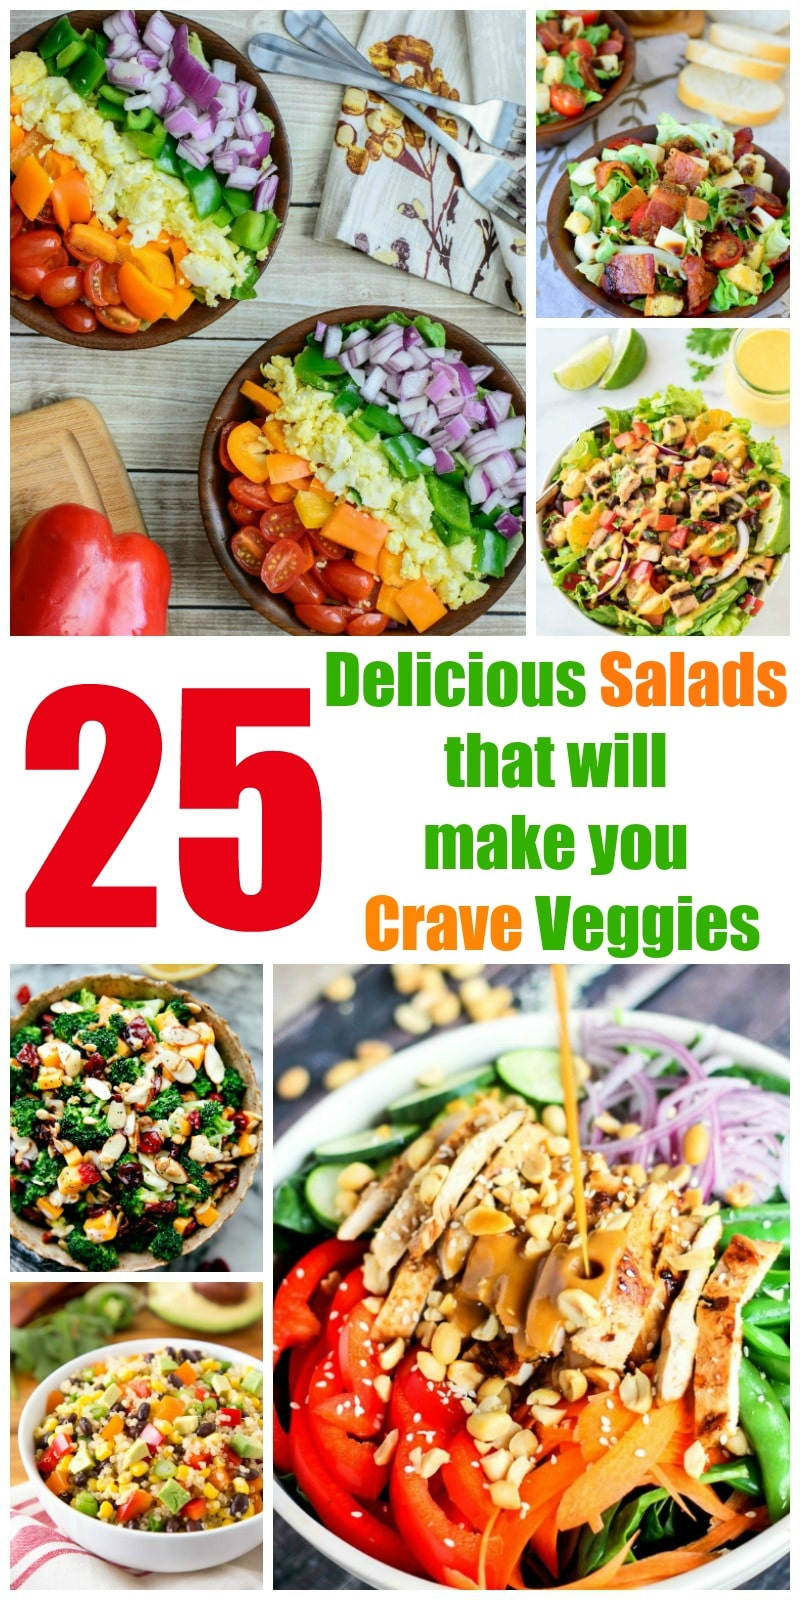 25 Delicious Salads (Salad Recipes) that will make you Crave Veggies